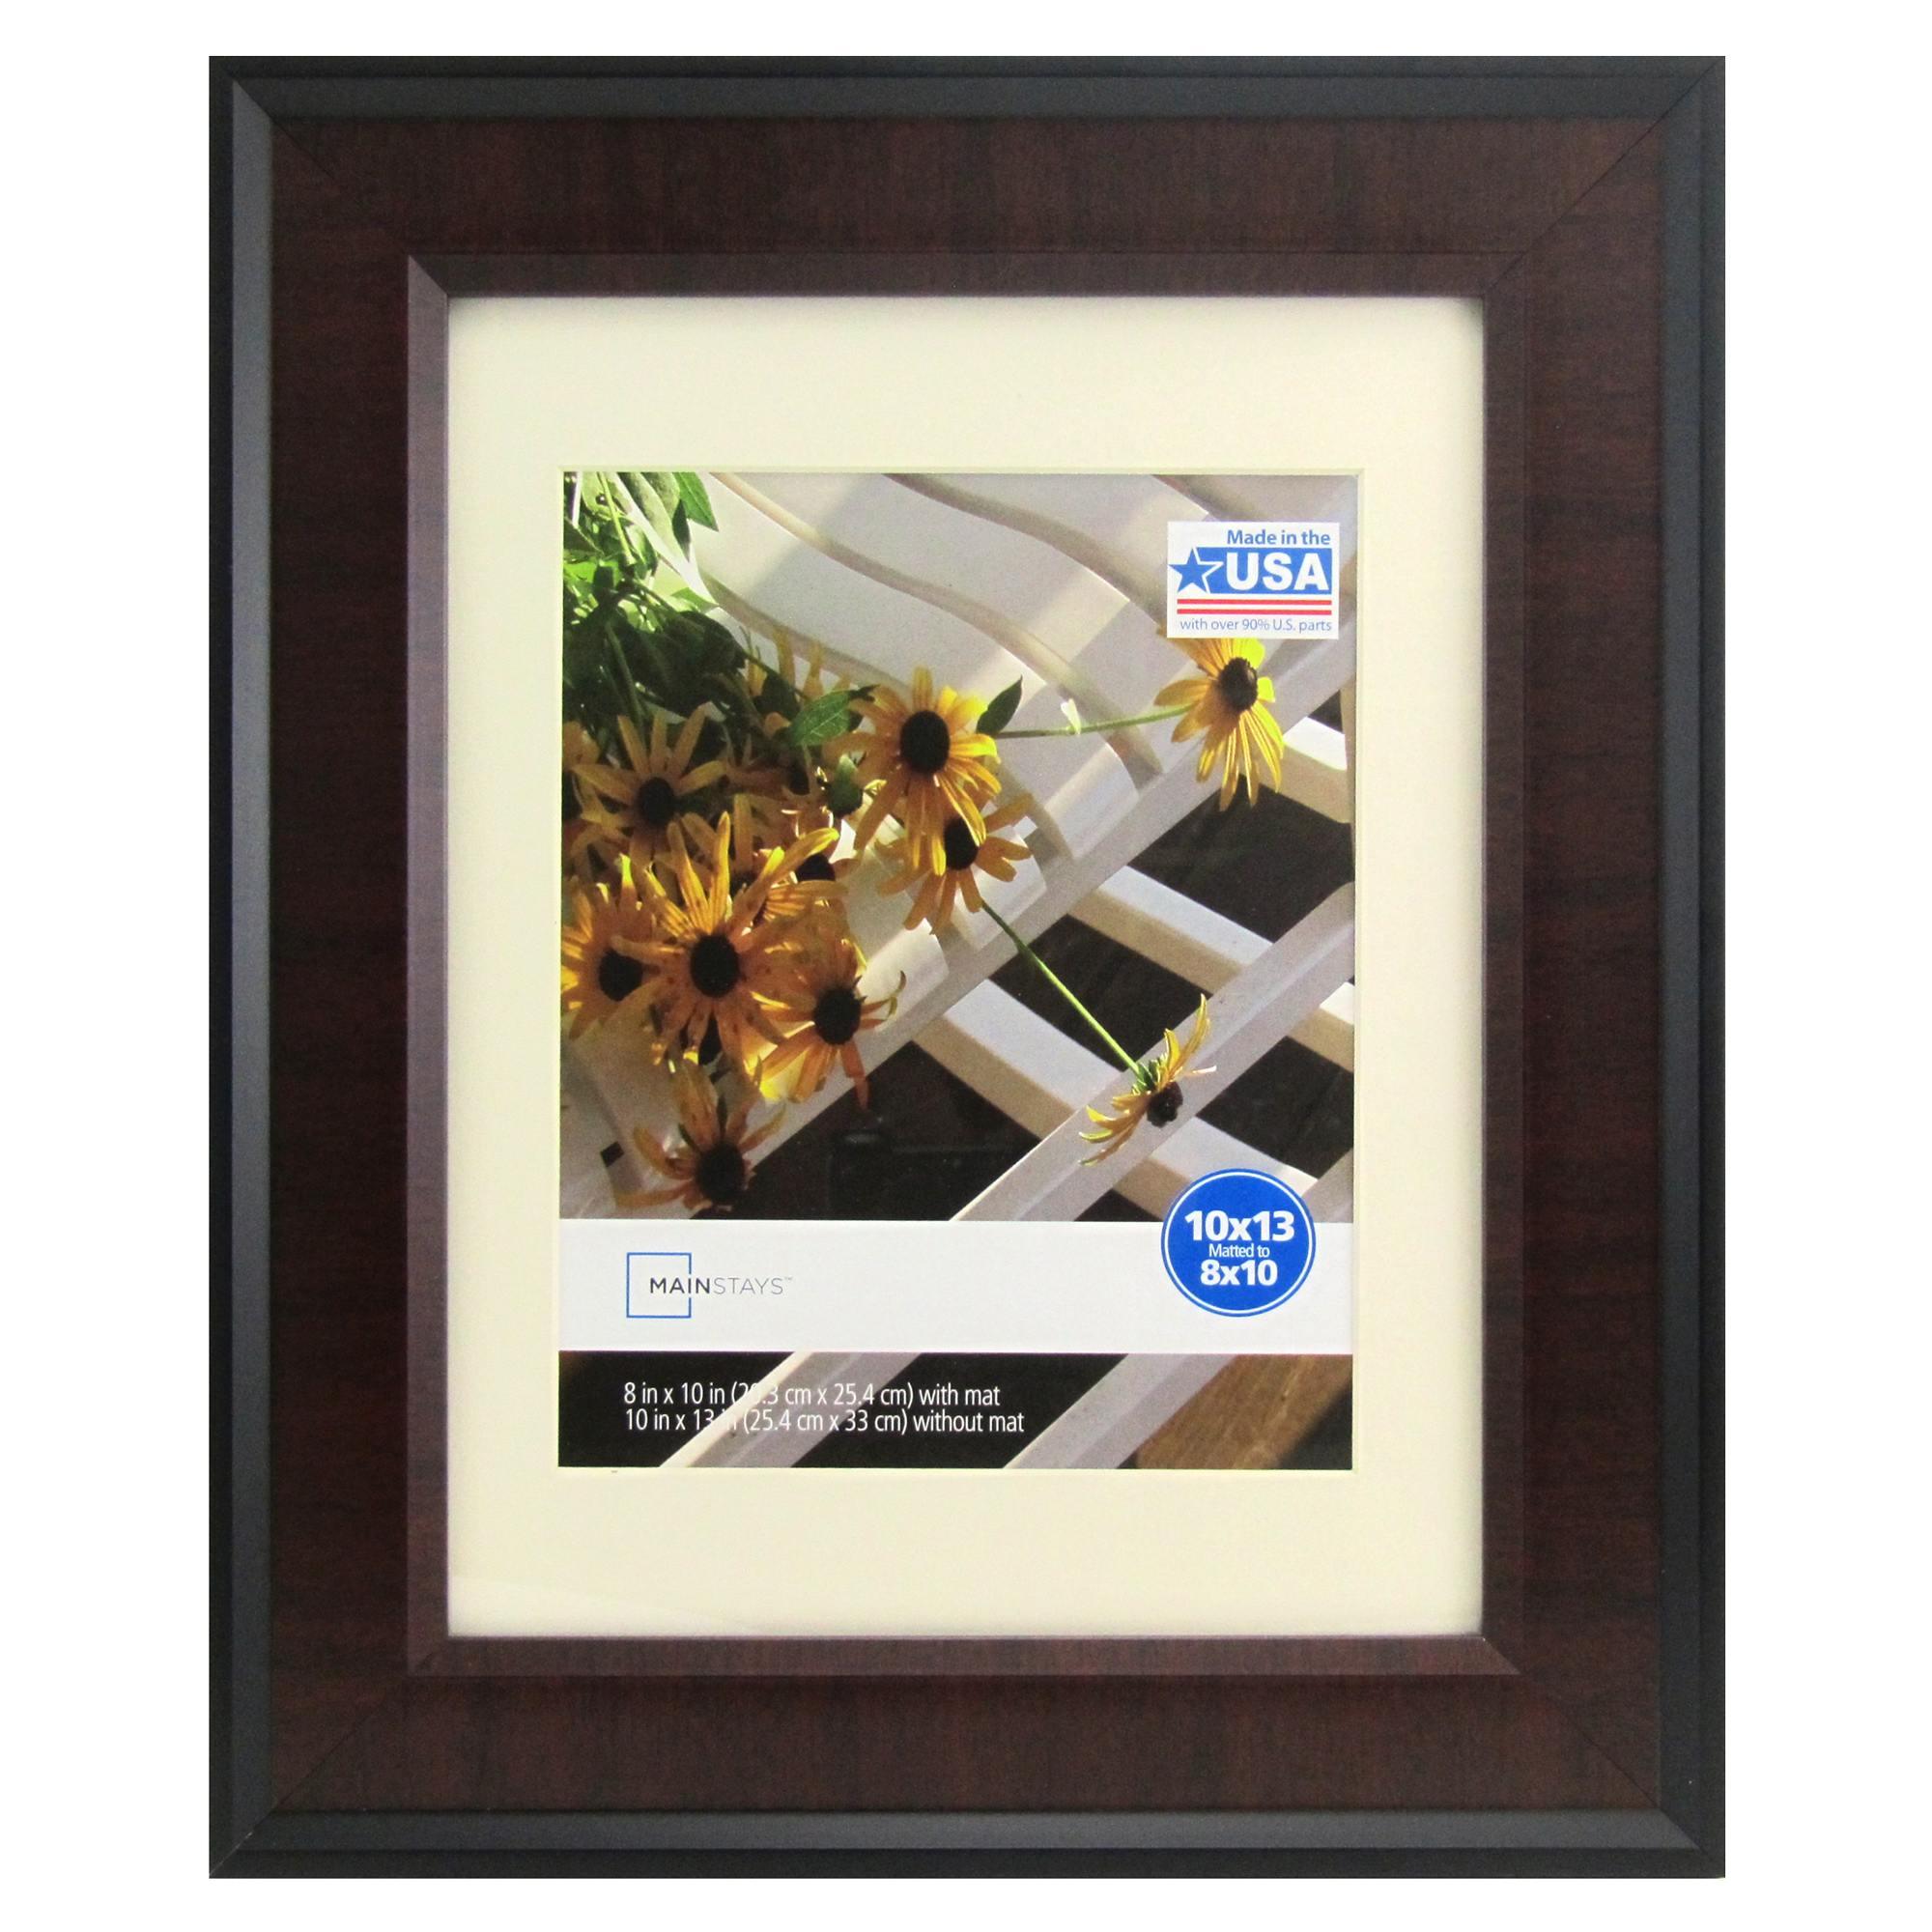 Mainstays Black And Cherry 10x13 Picture Frame Walmartcom